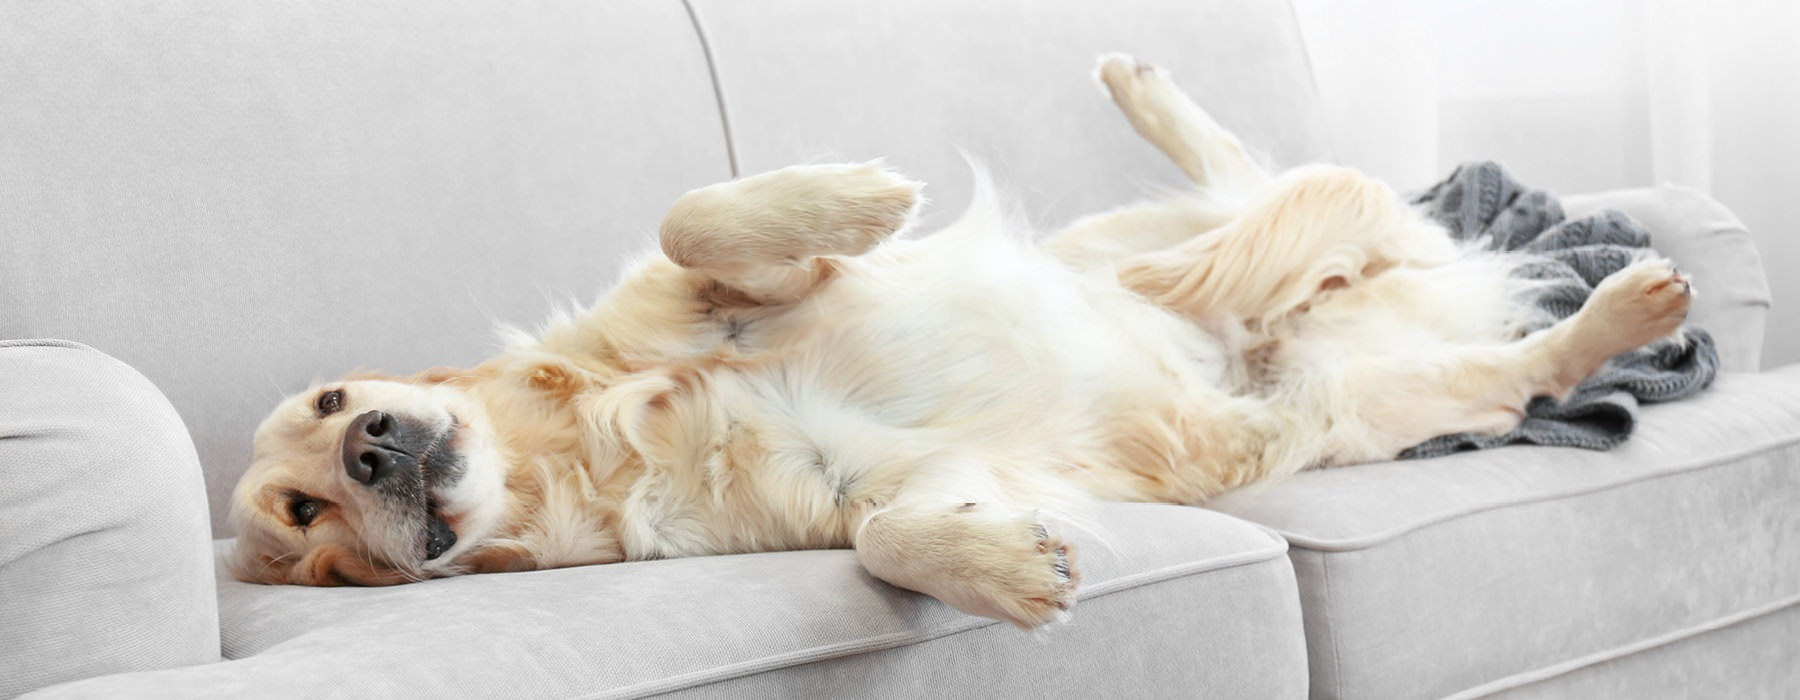 Dog sleeping on a couch